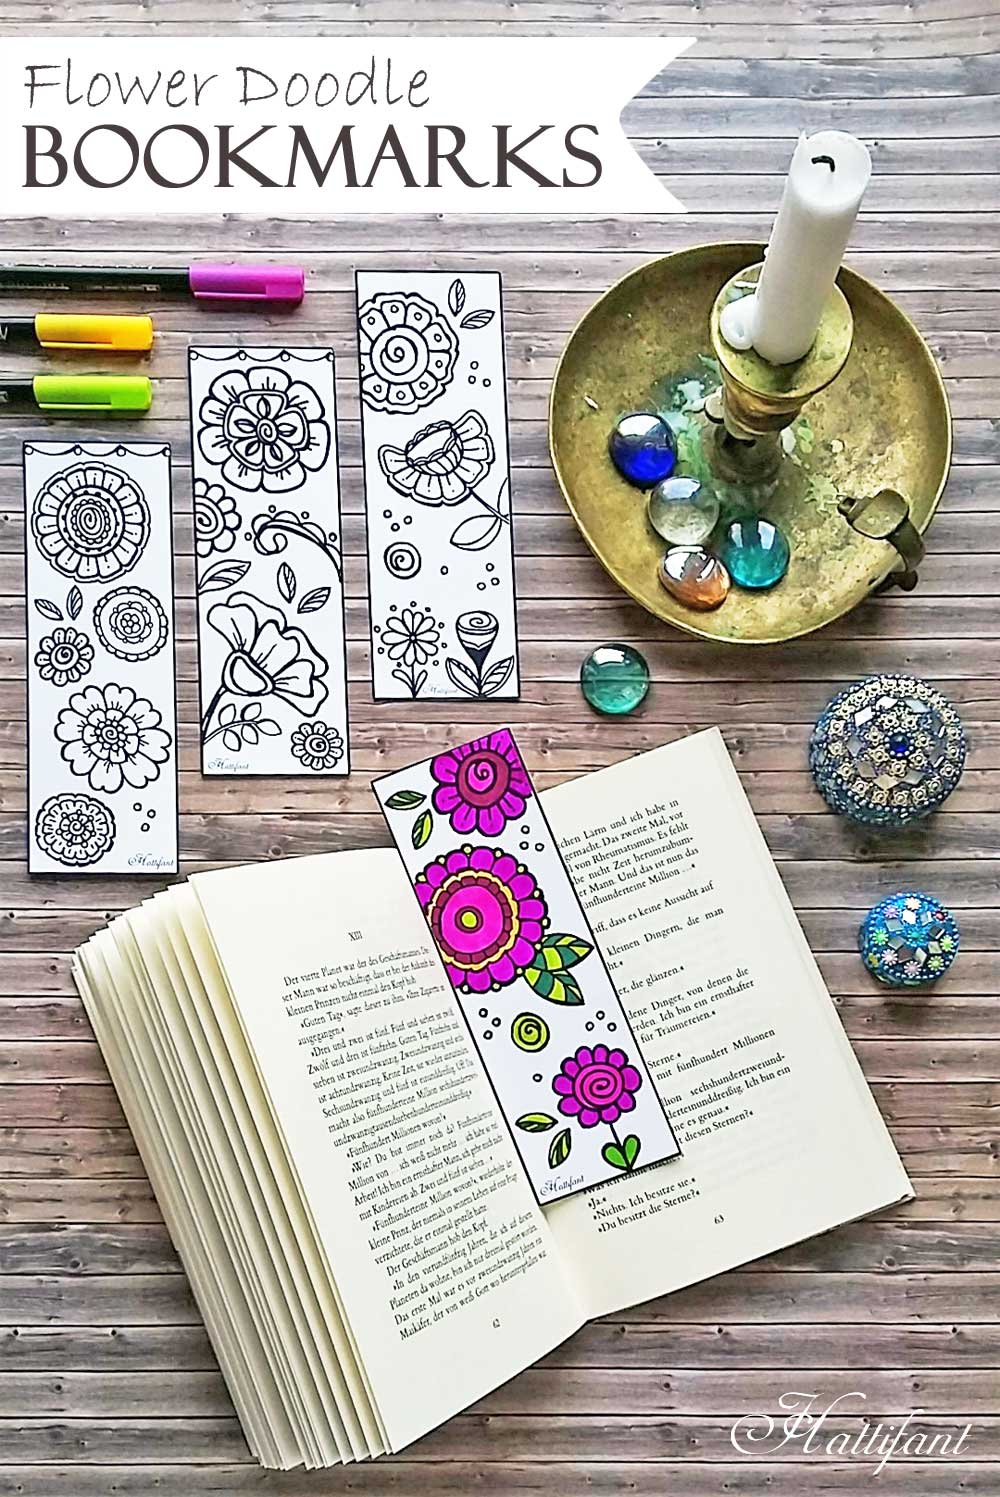 Hattifant's Flower Doodle Bookmarks to DIY and Color